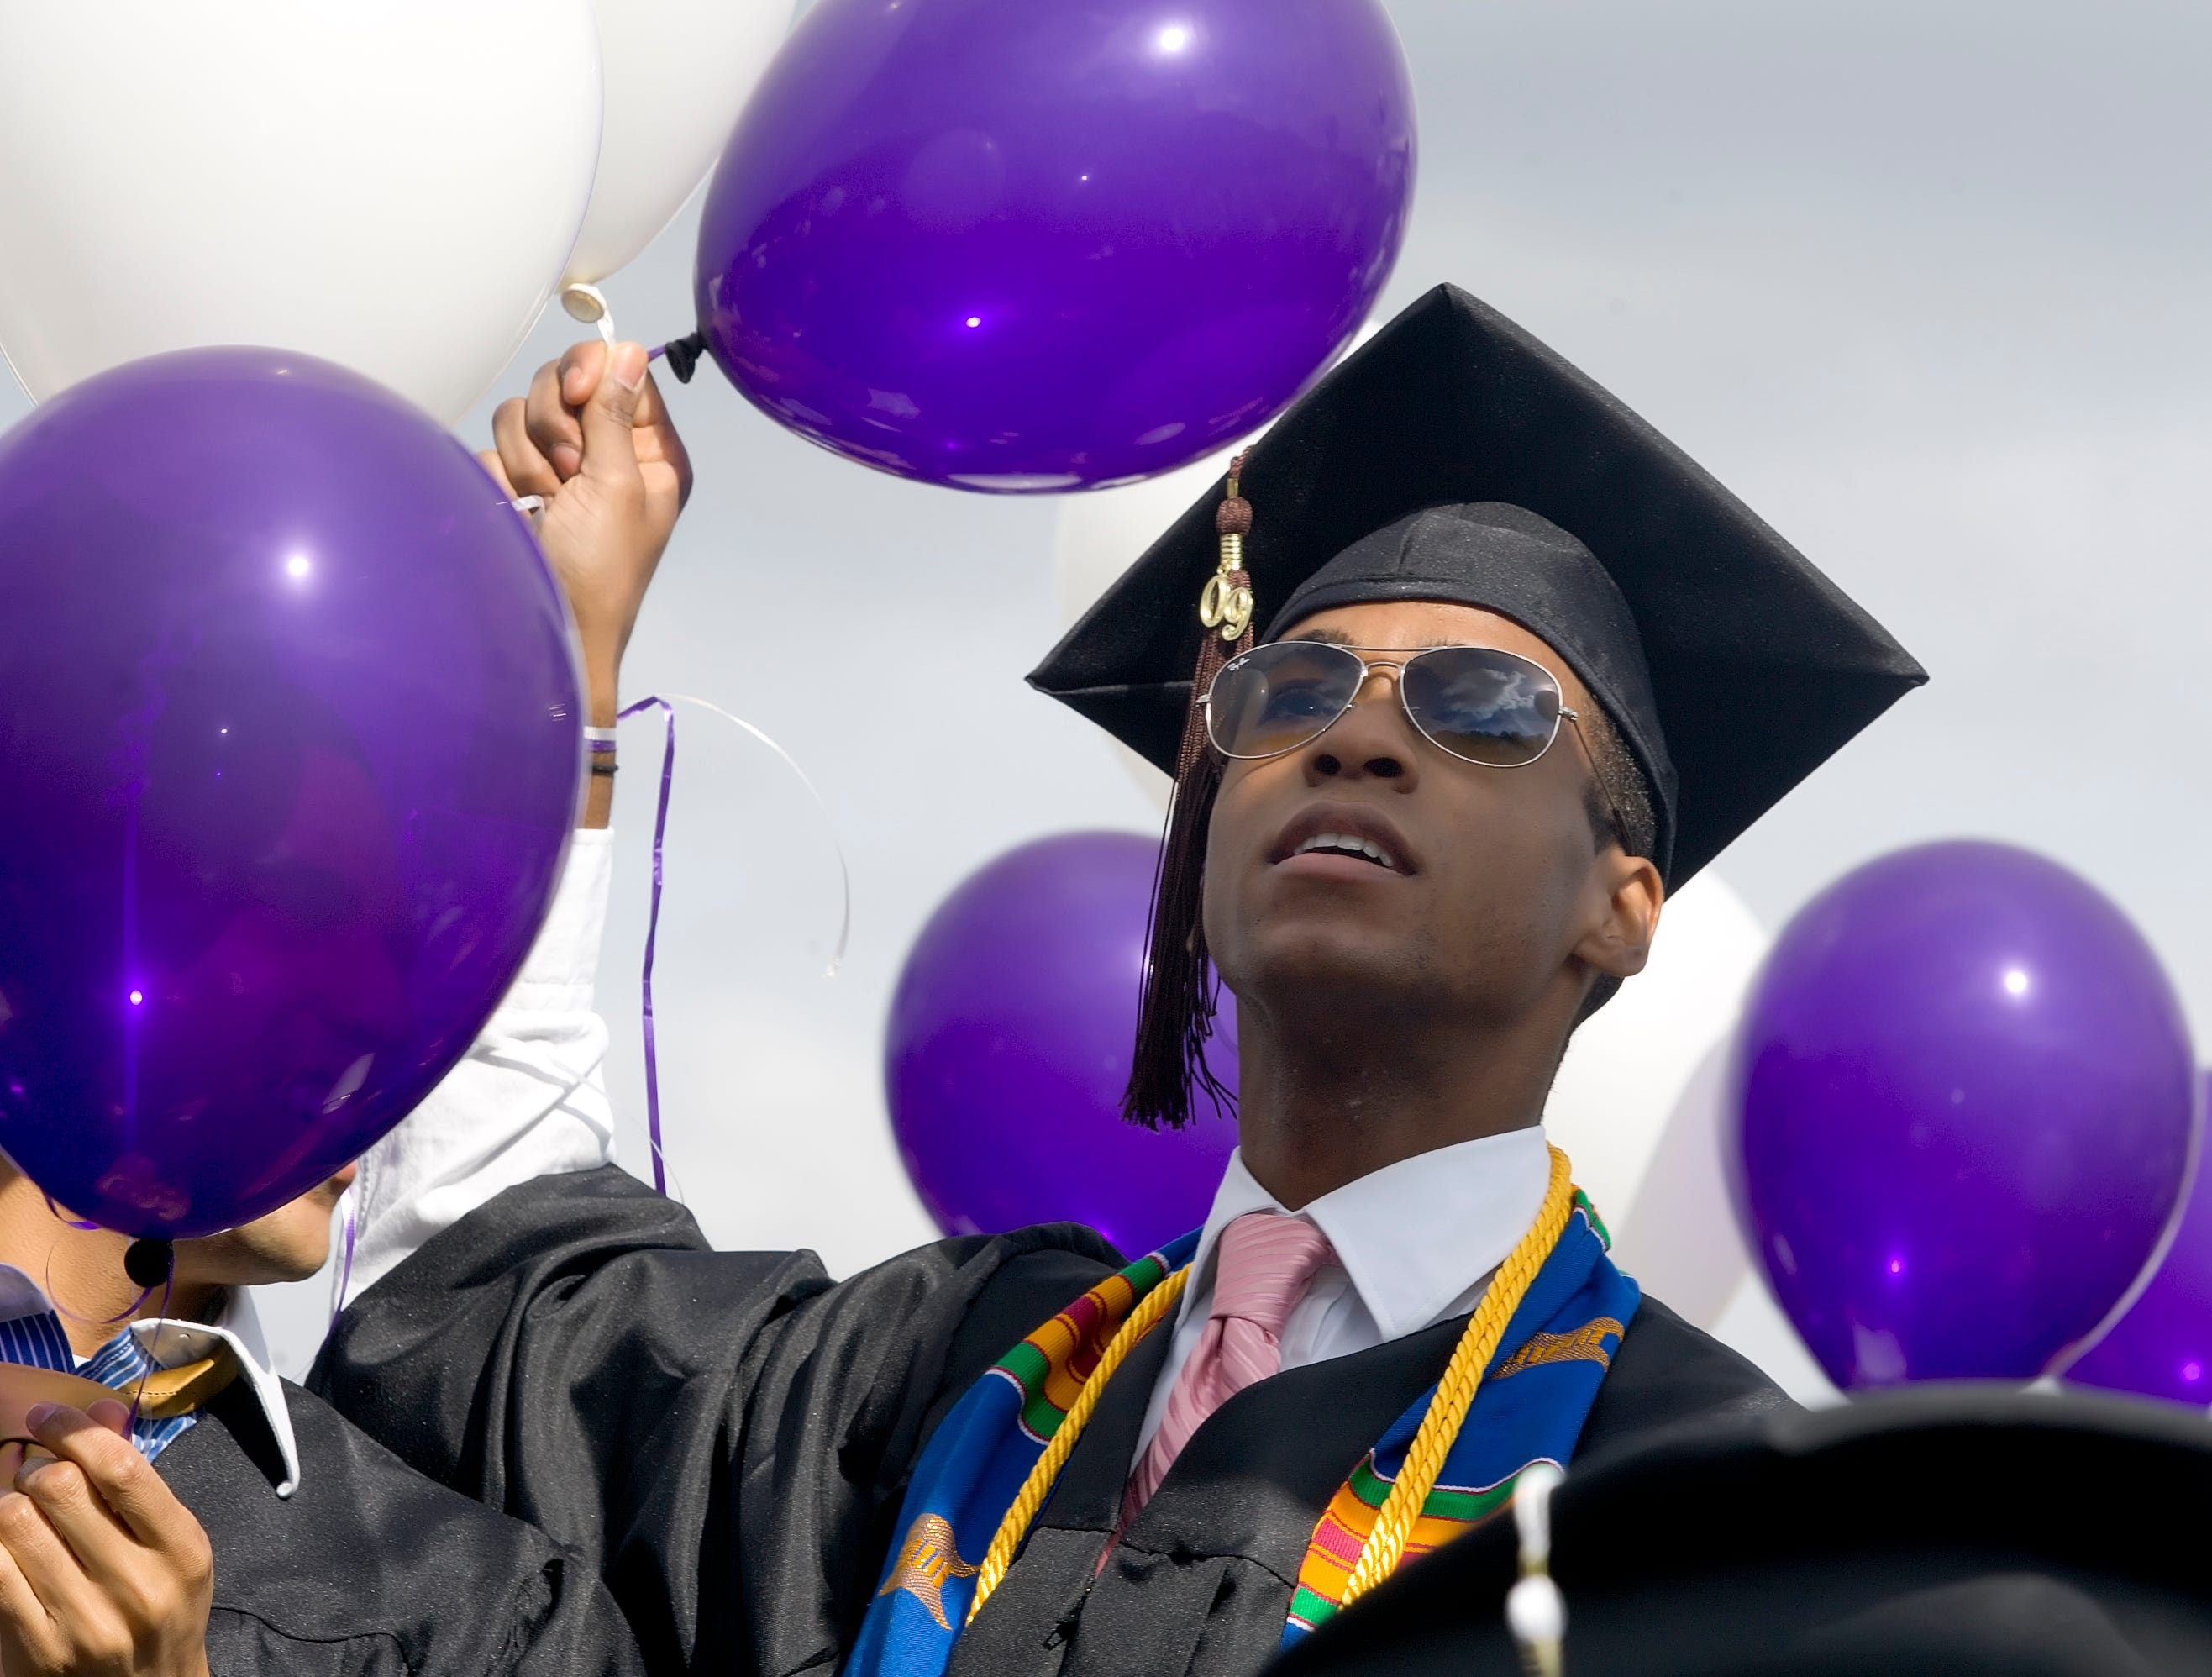 2009: Jeremy Reese looks at the crowd in the bleachers of Butterfield Stadium during the 2009 Ithaca College Commencement Ceremony.